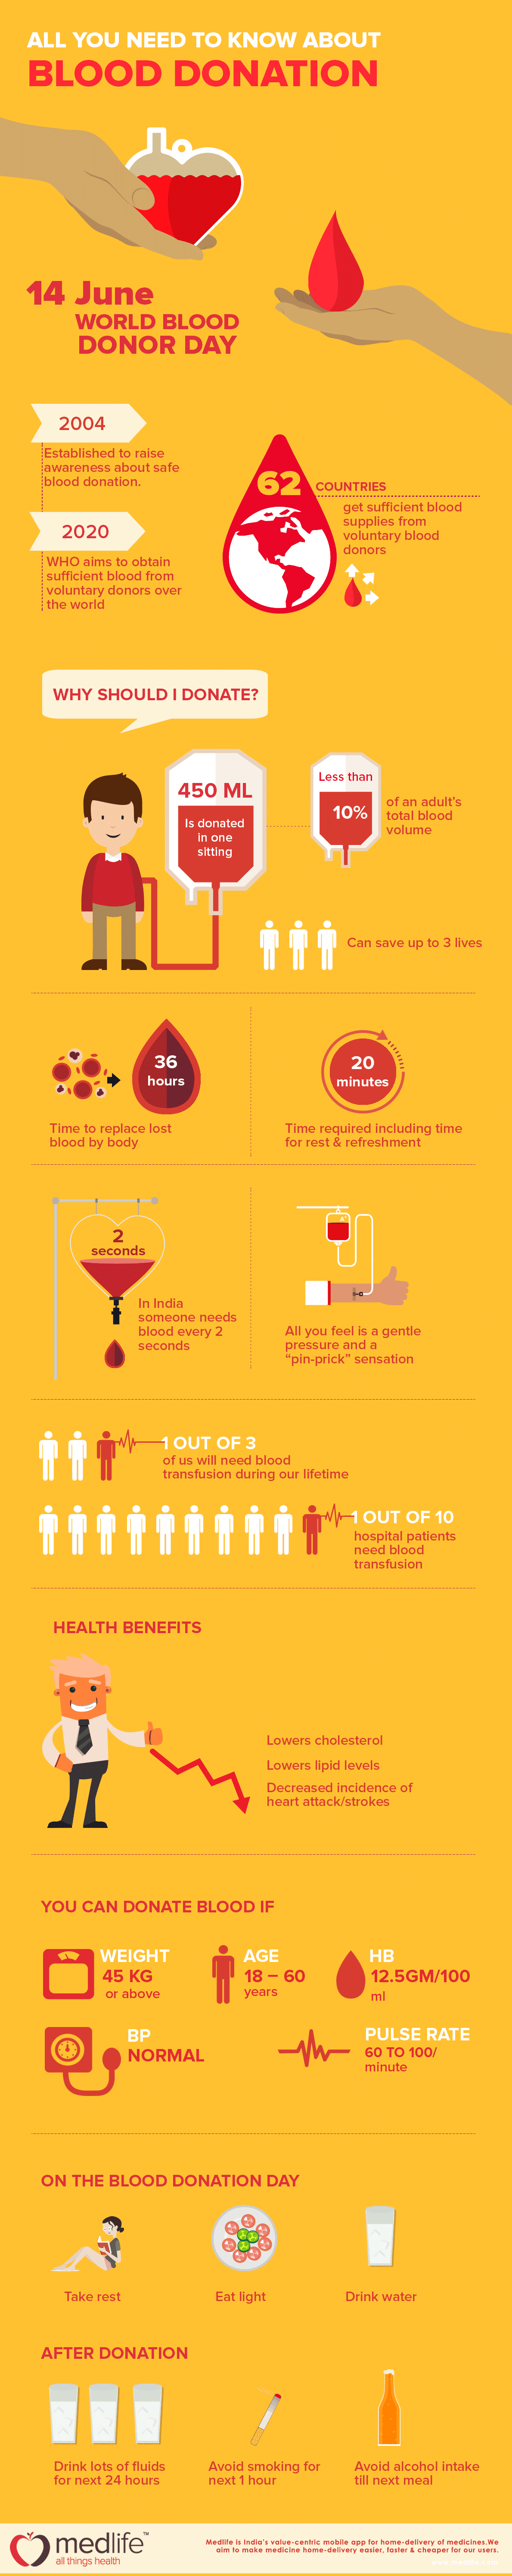 All you need to know about blood donation #infographic